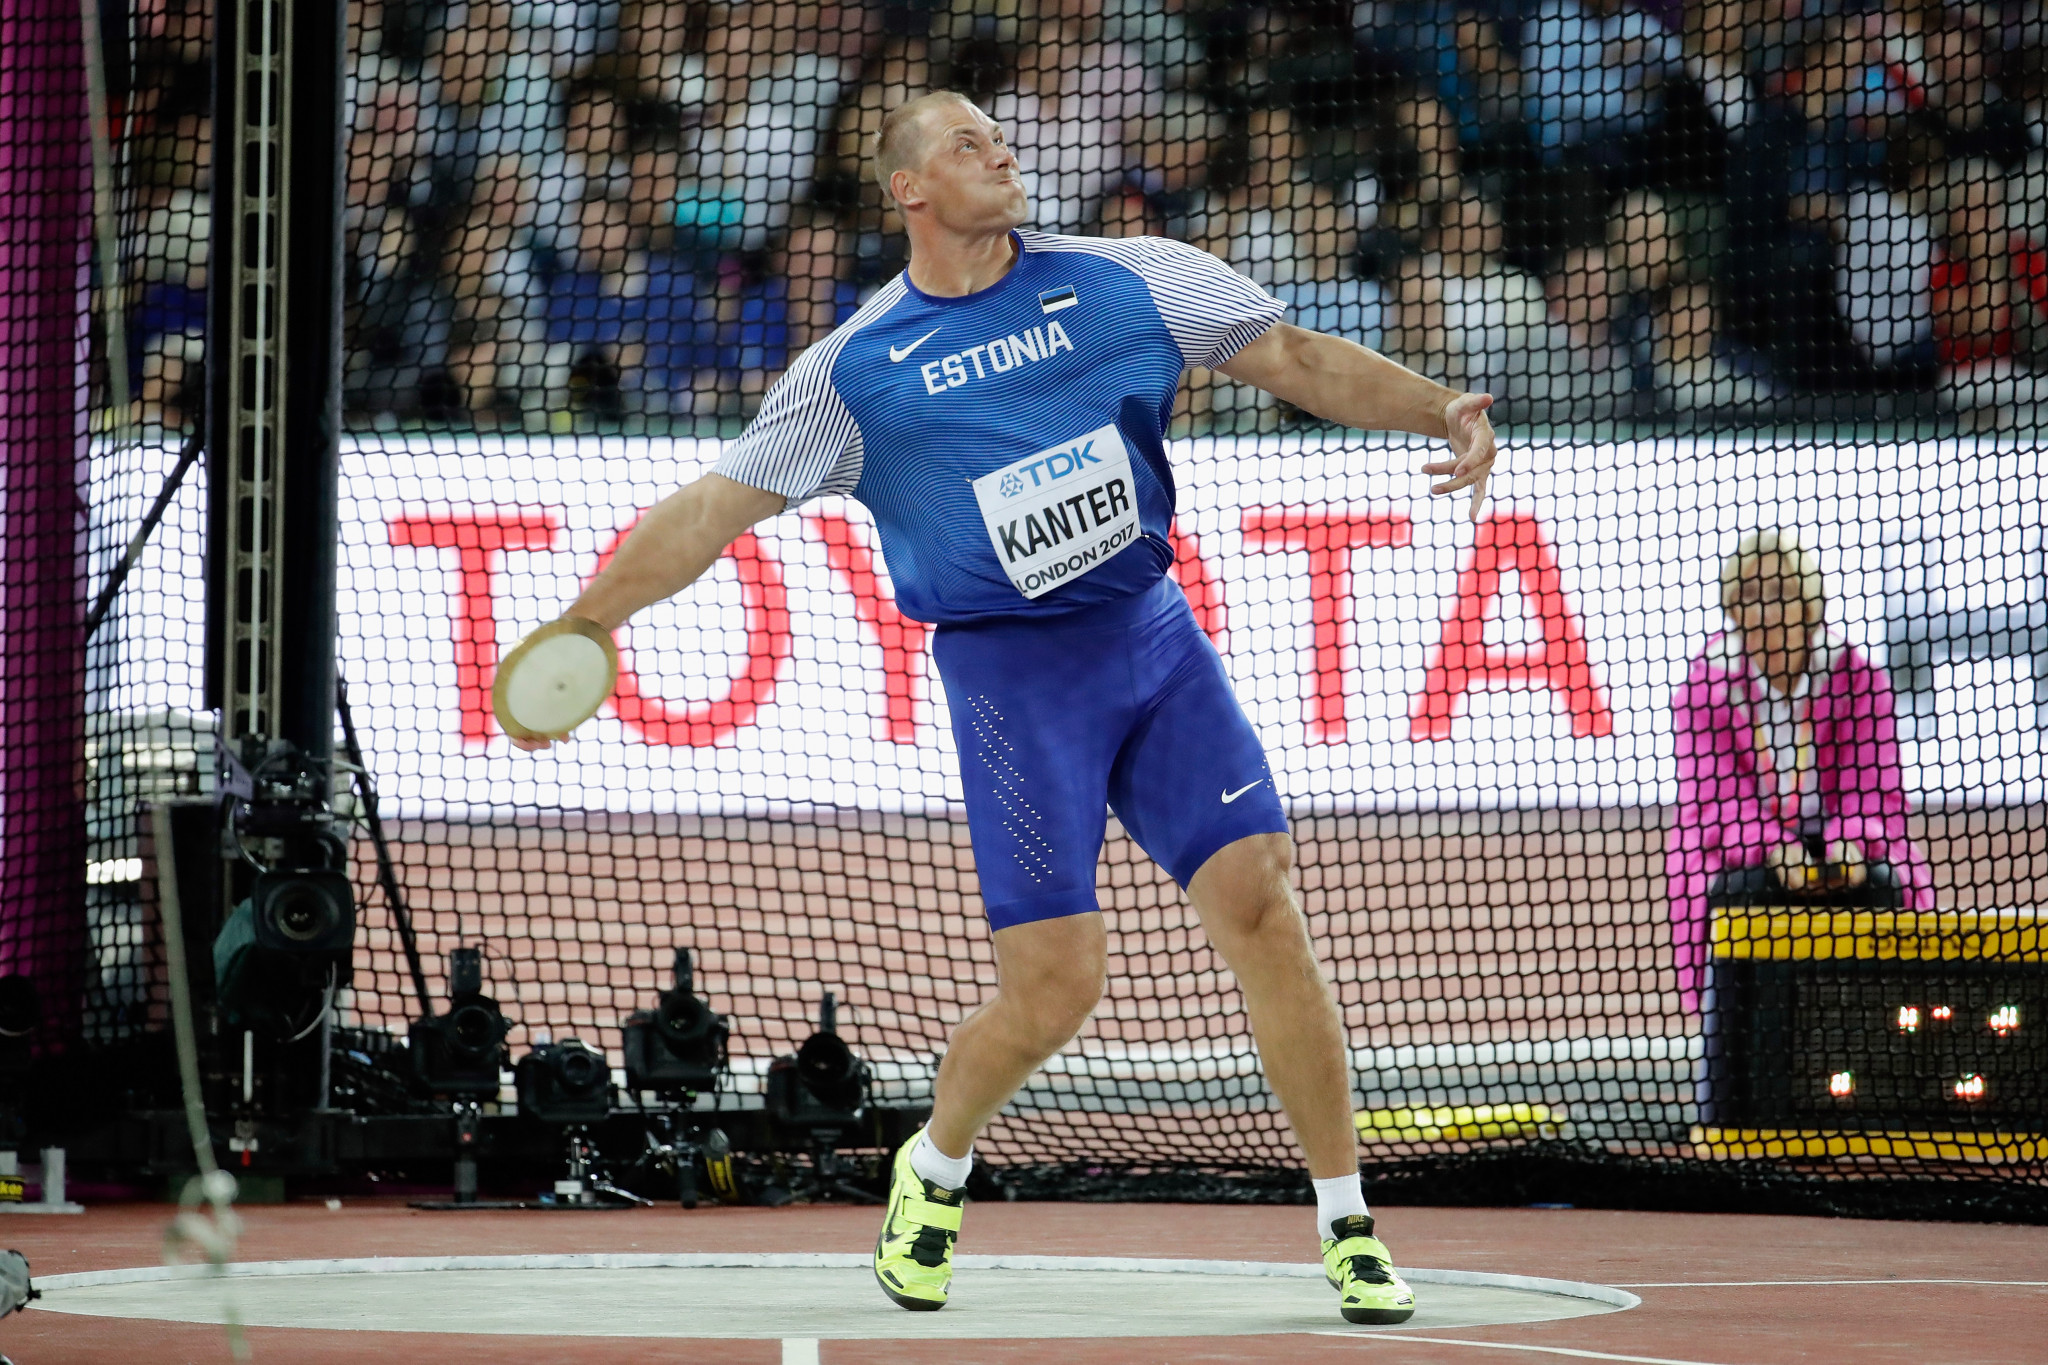 Gerd Kanter was one of the Estonian athletes who got involved ©Getty Images